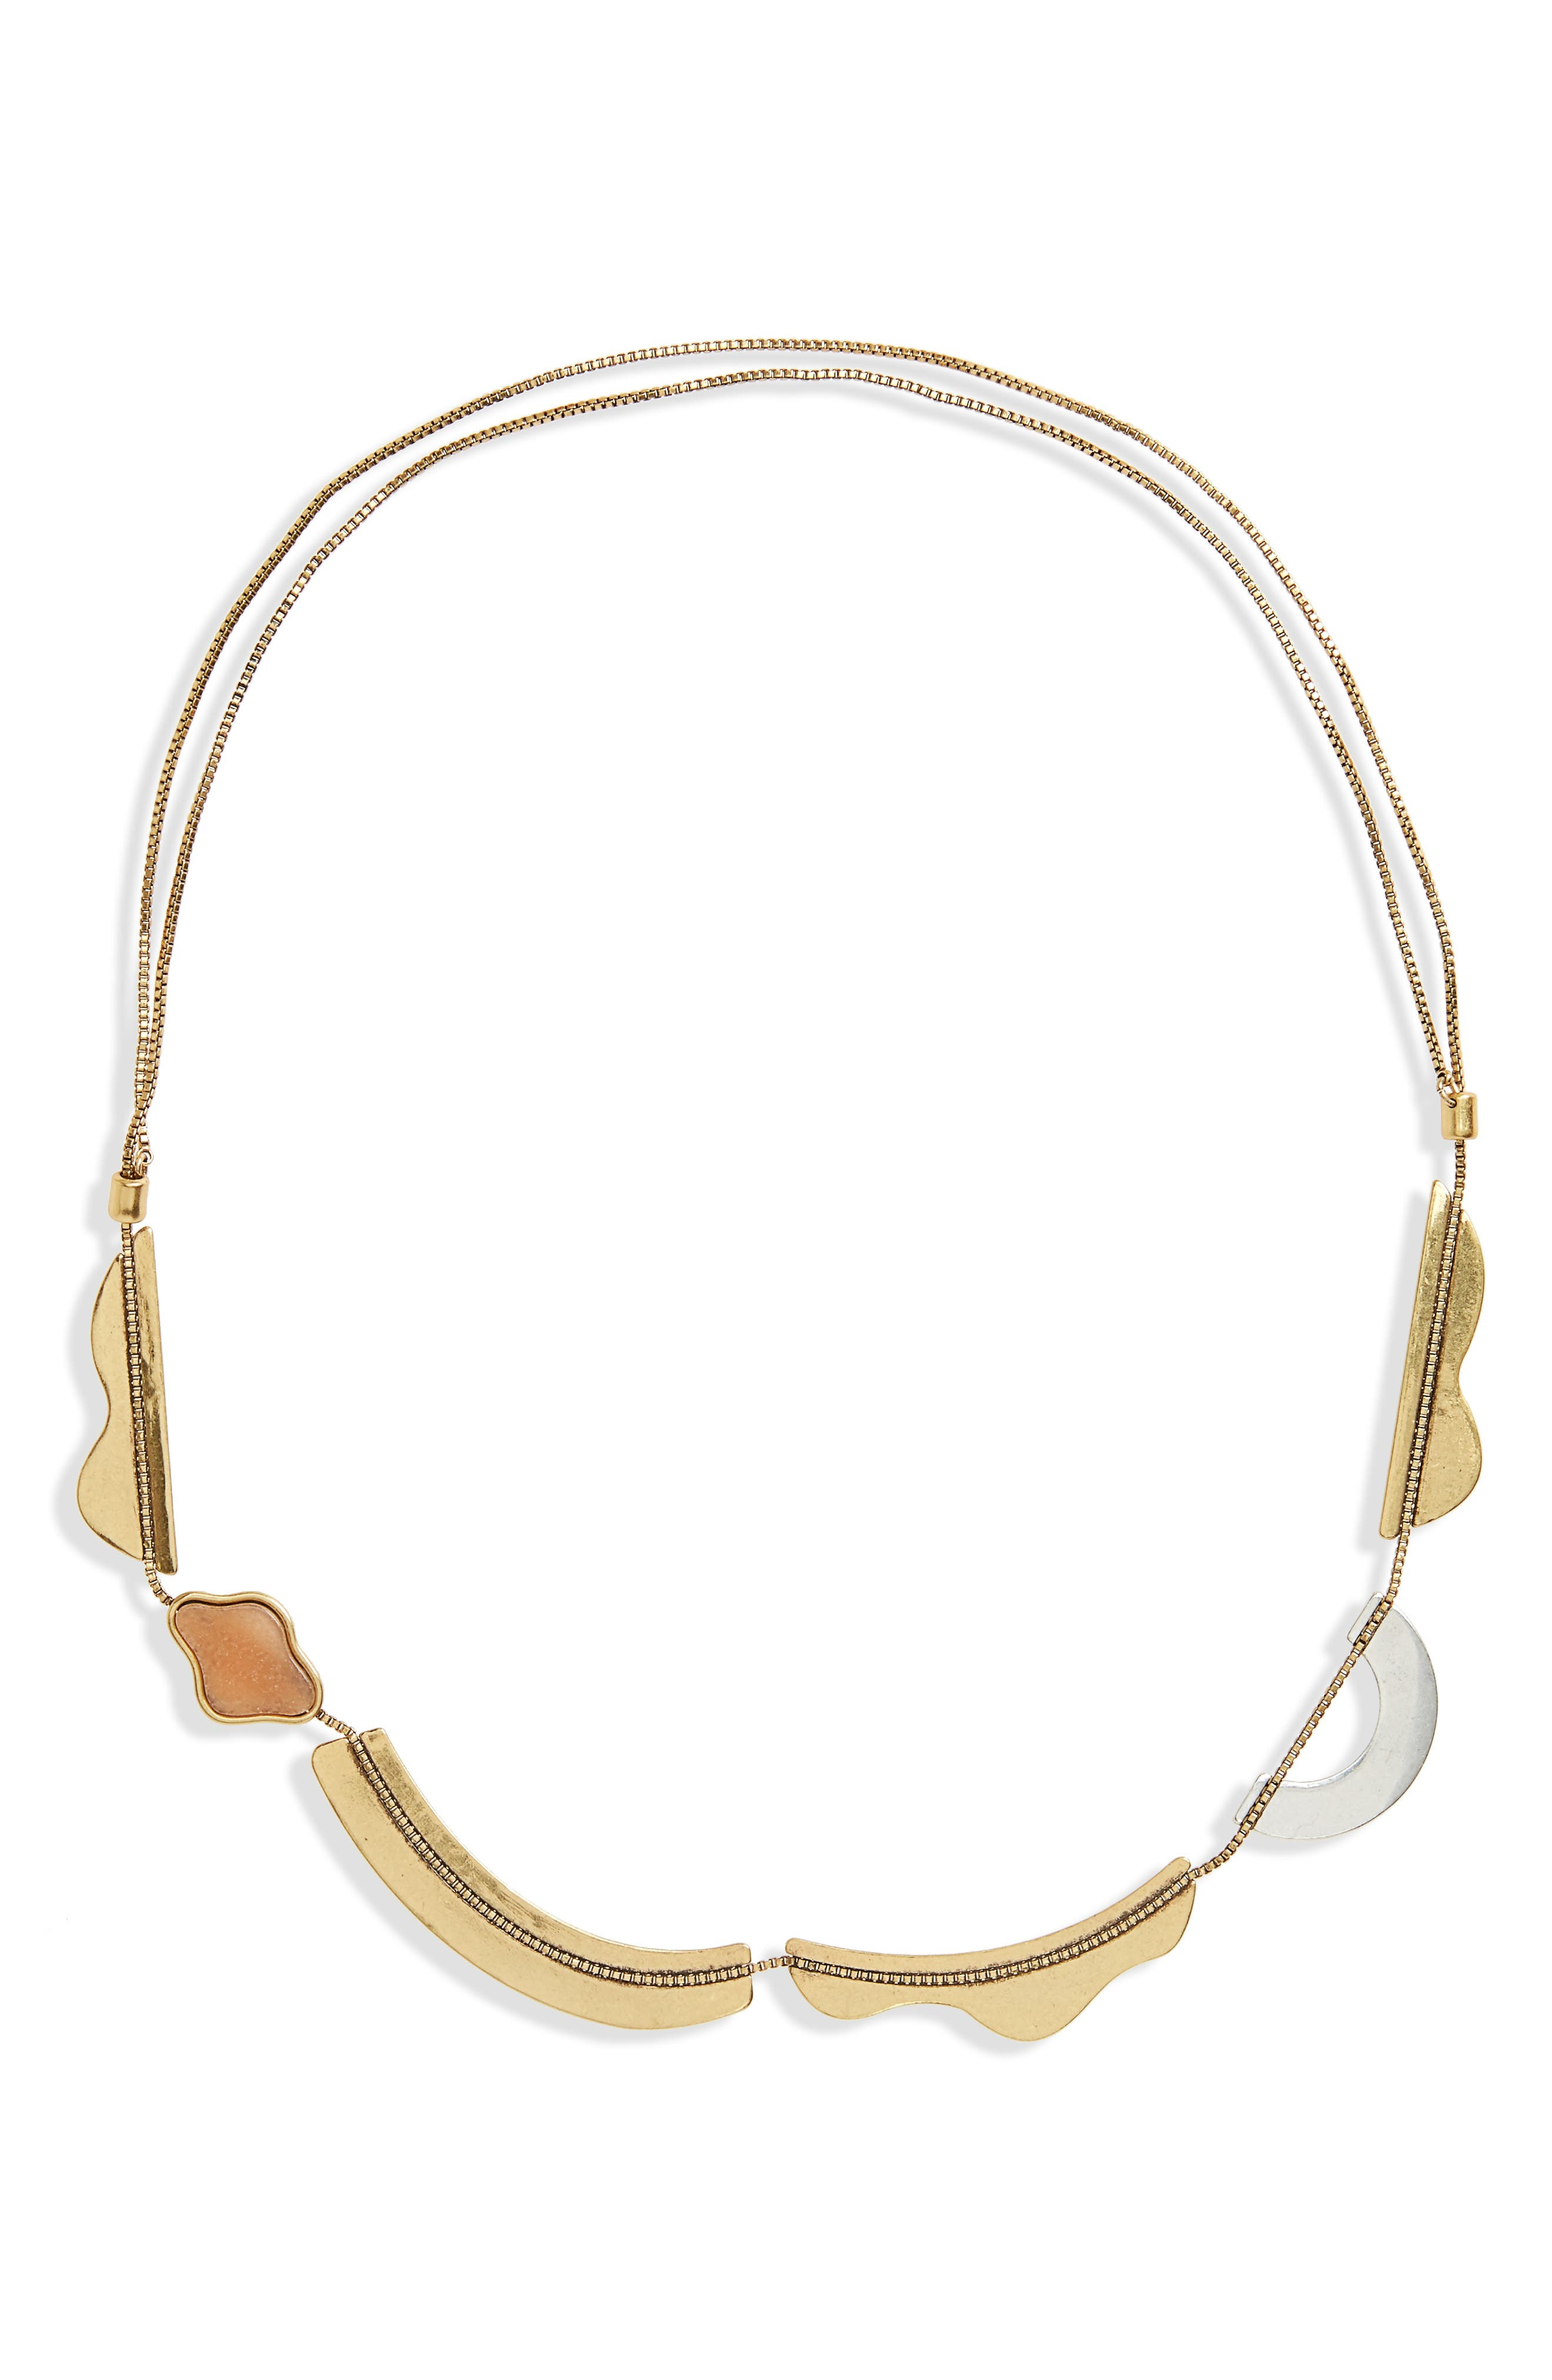 Madewell Concept Choker Necklace